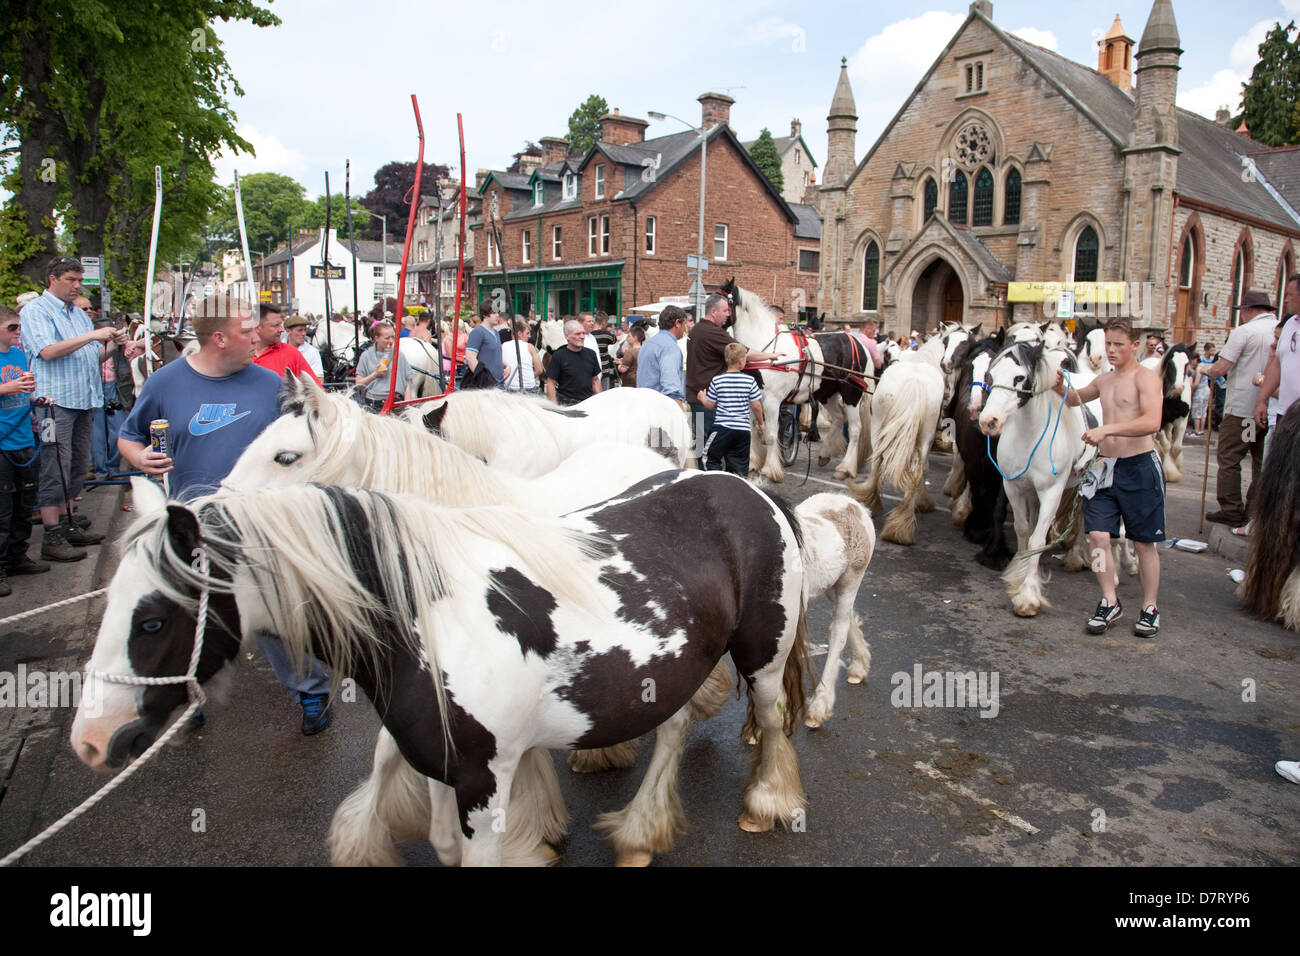 The Sands road during the Appleby Fair, an annual gathering of Gypsy and Traveller communities from UK and Ireland - Stock Image